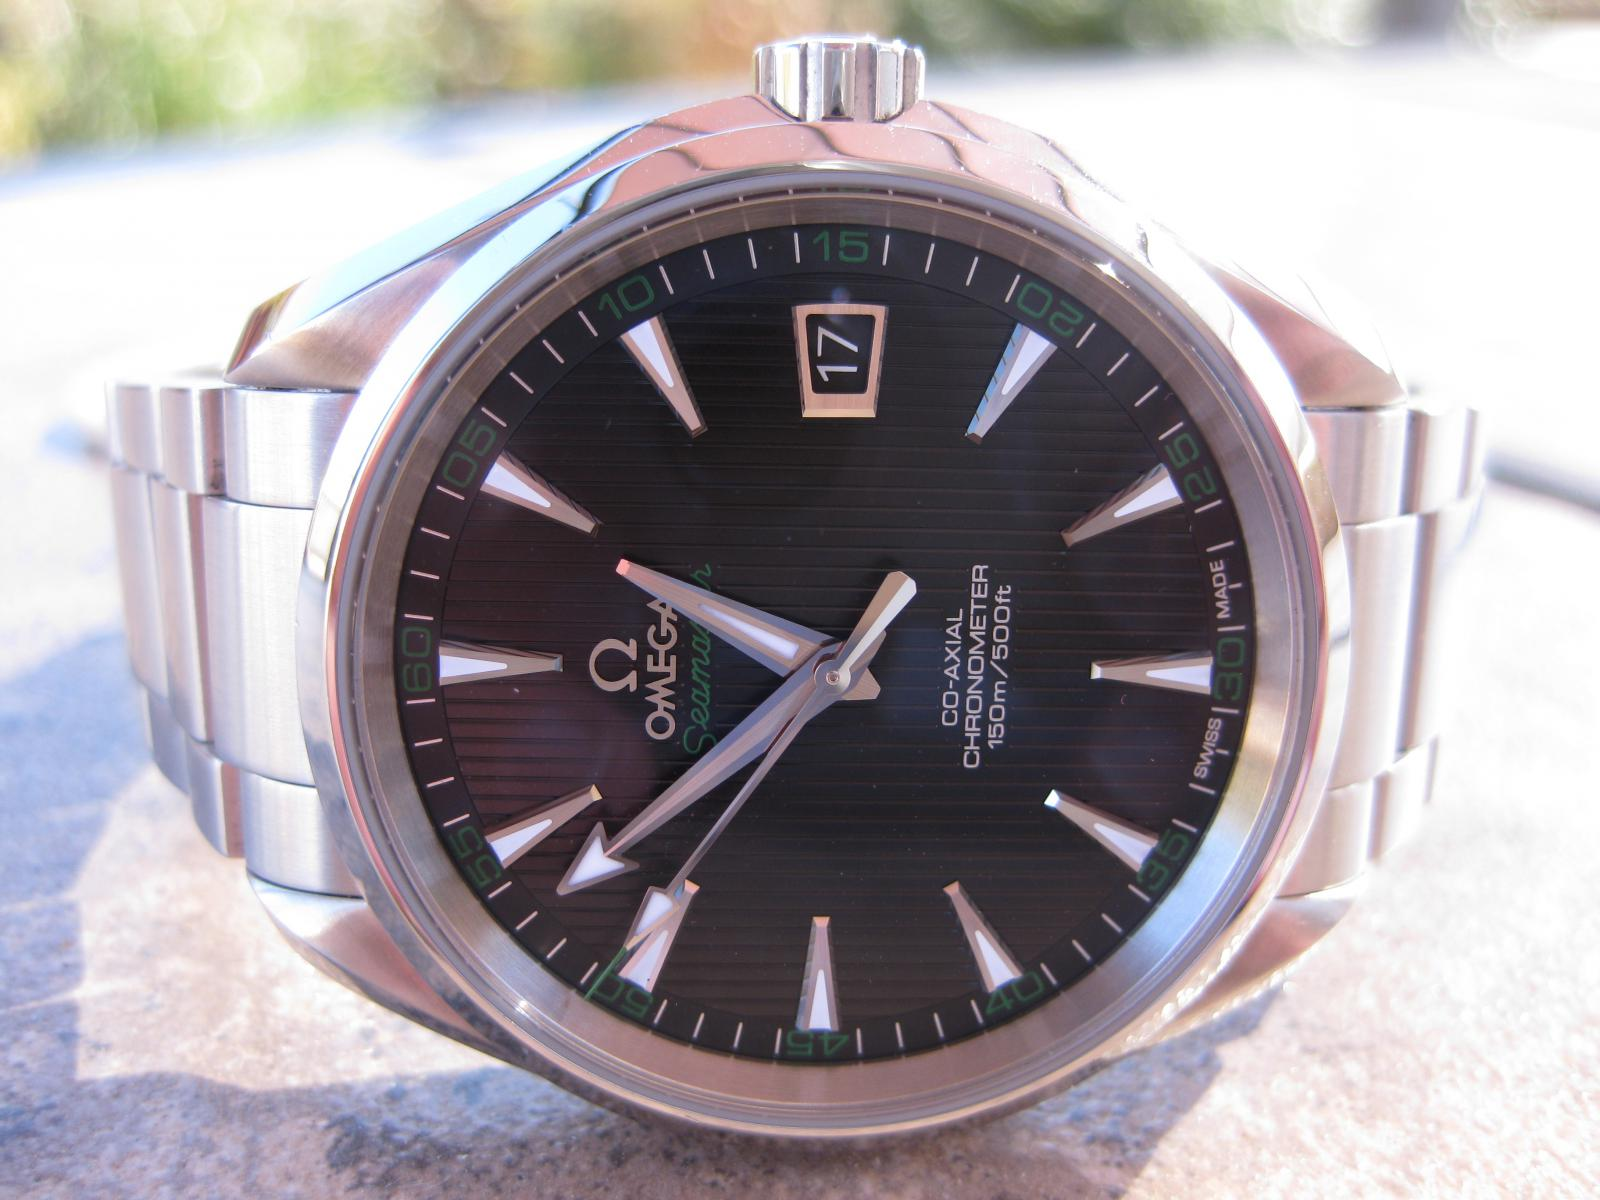 Lets see your Omega-img_2107.jpg